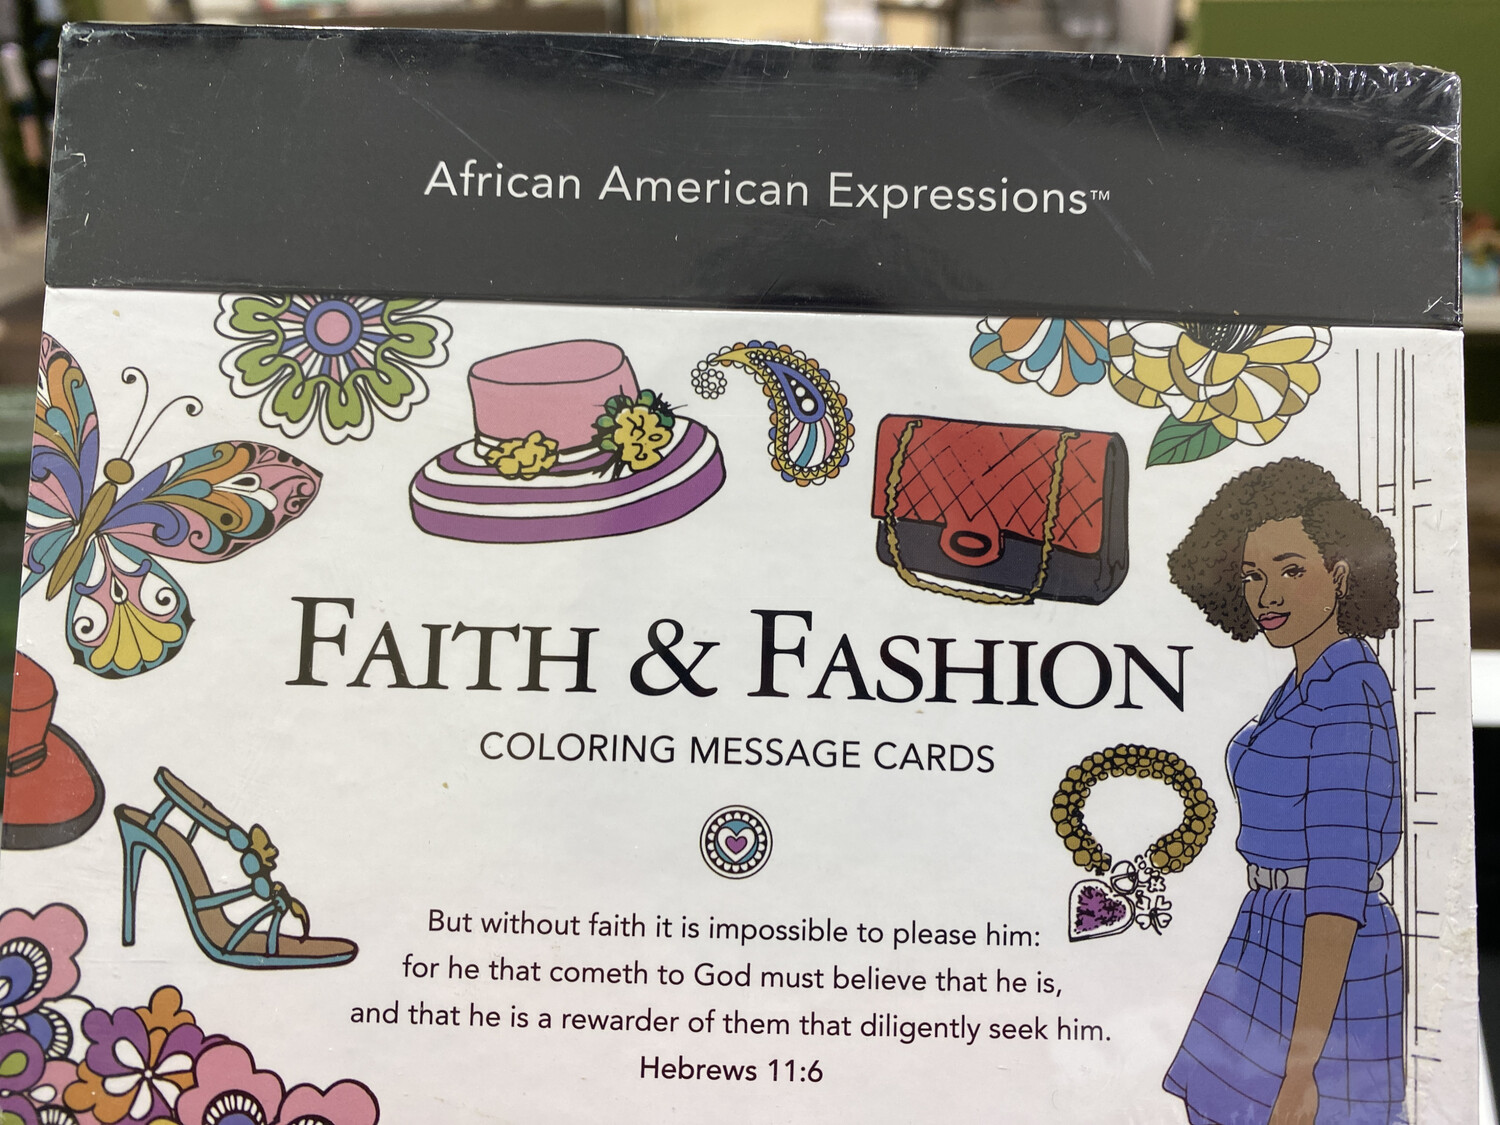 Faith & Fashion Coloring Message Cards